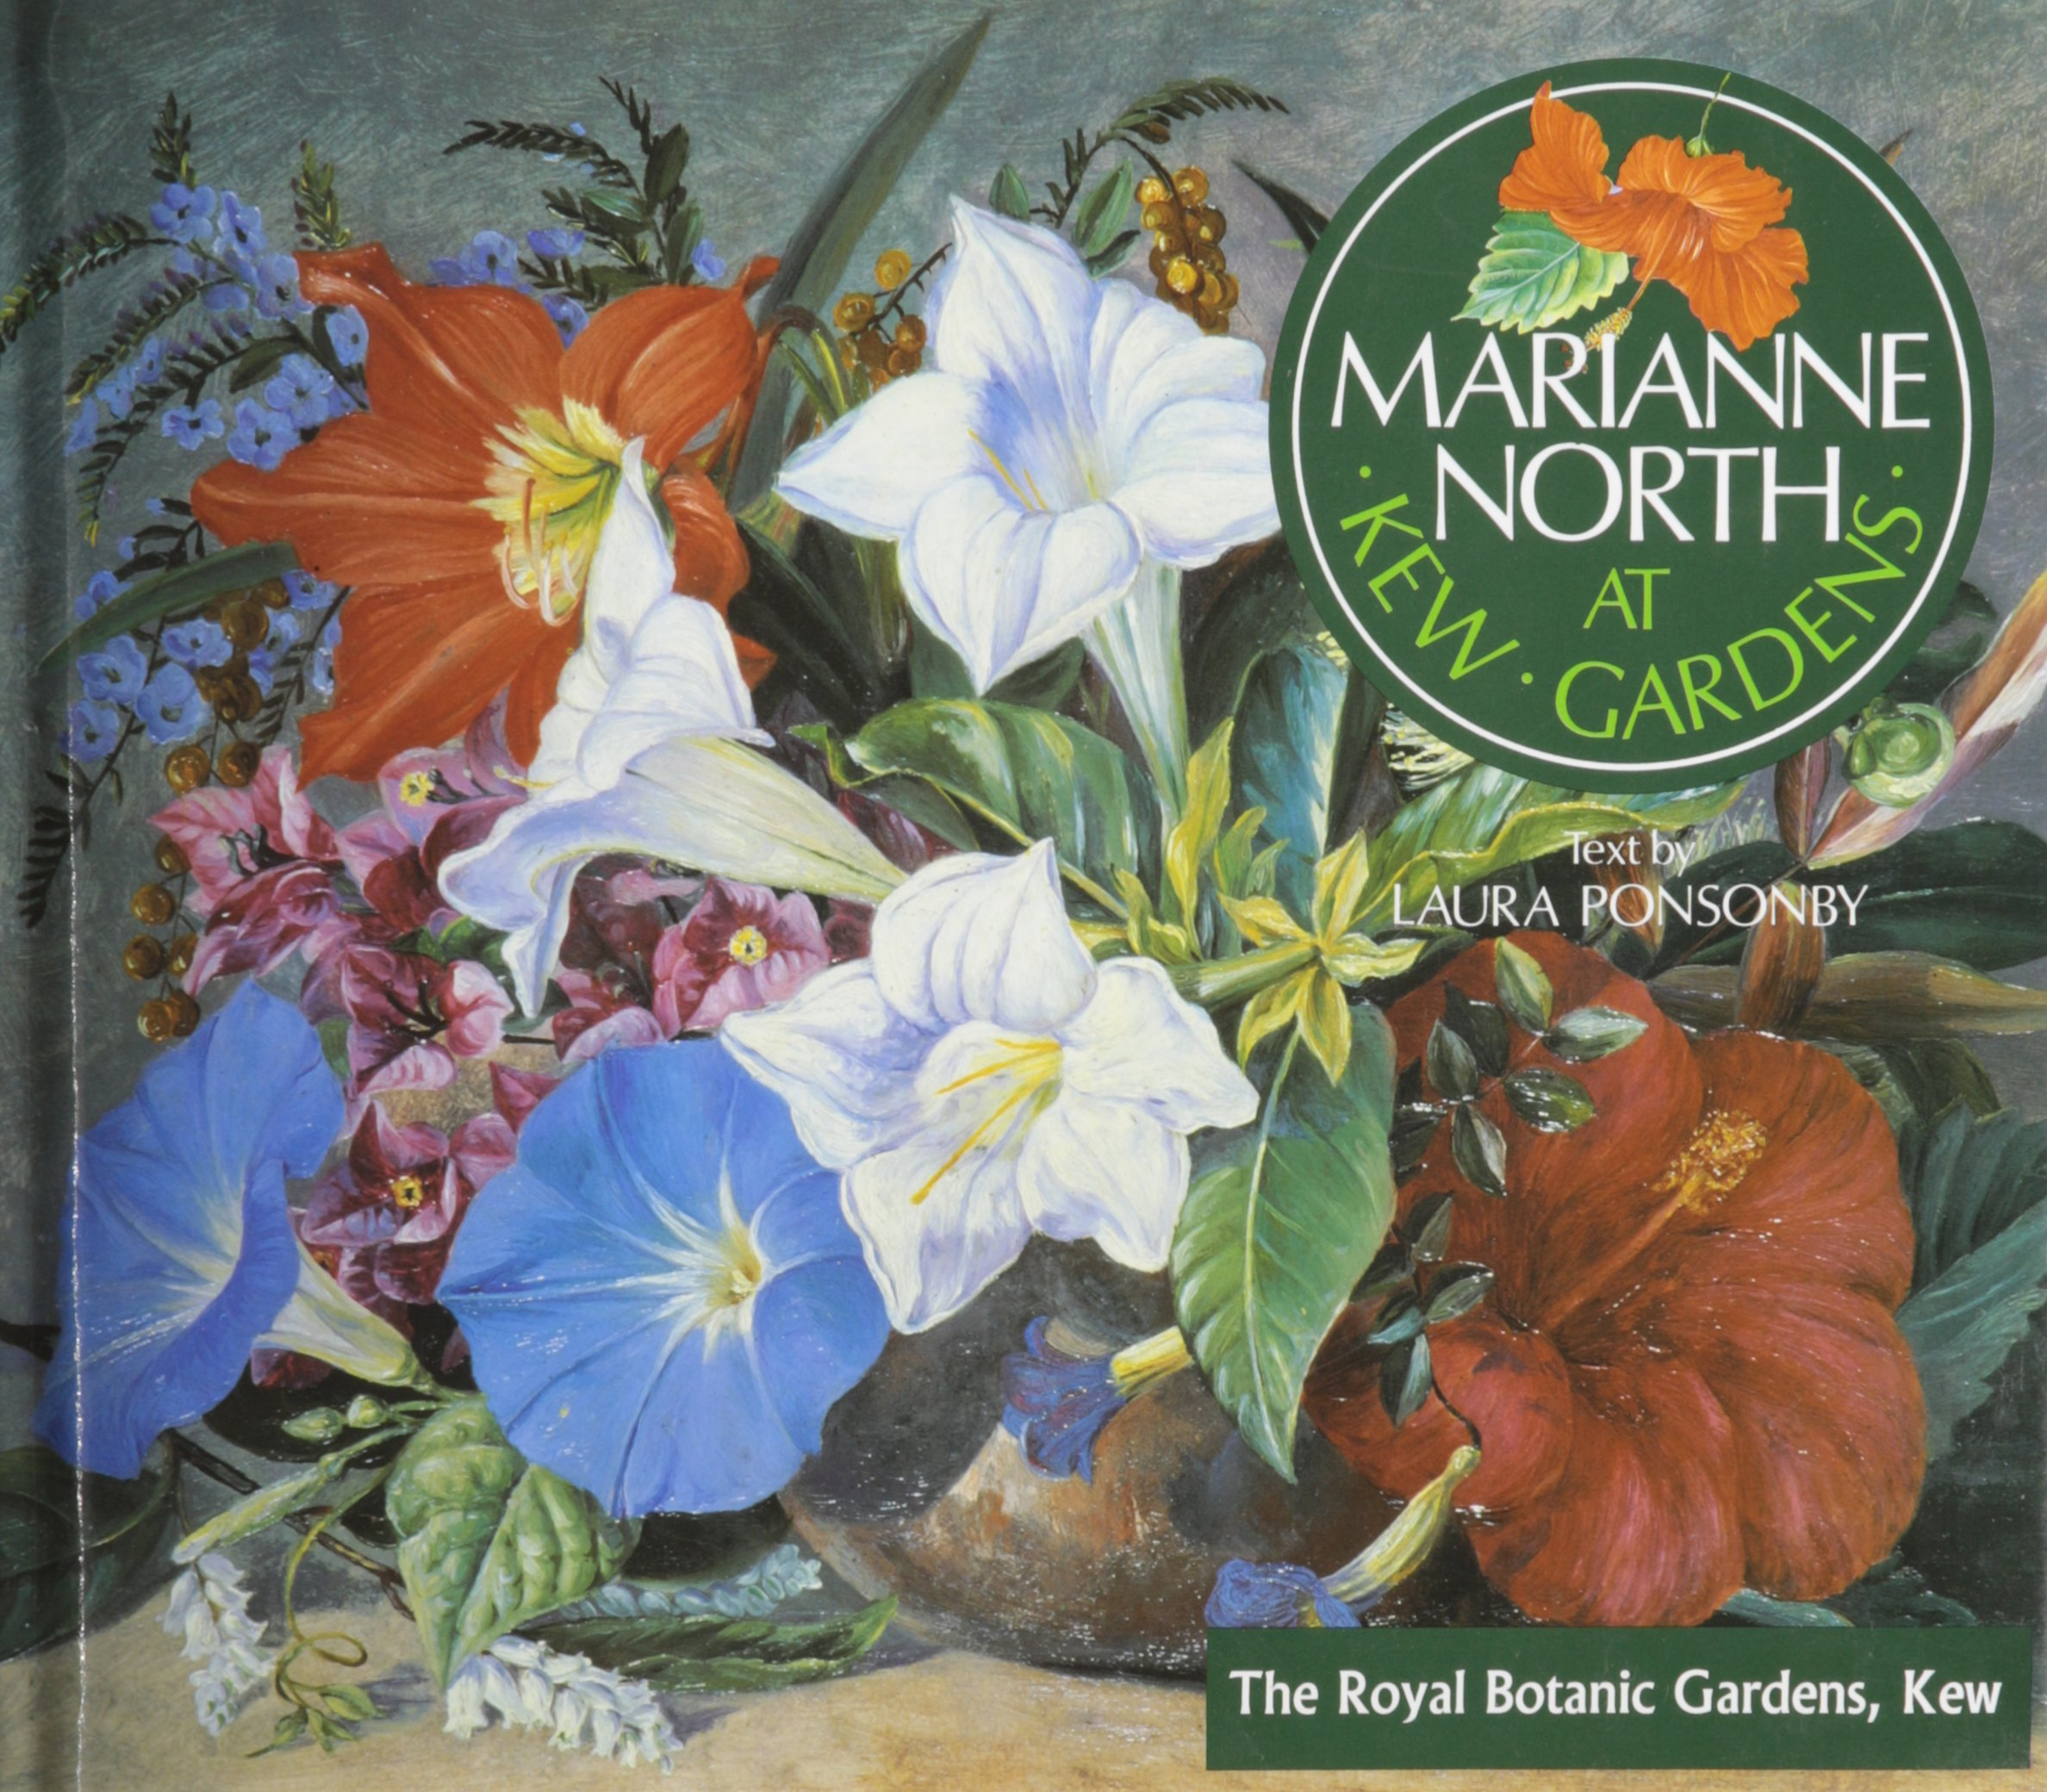 Marianne North at Kew Gardens PDF